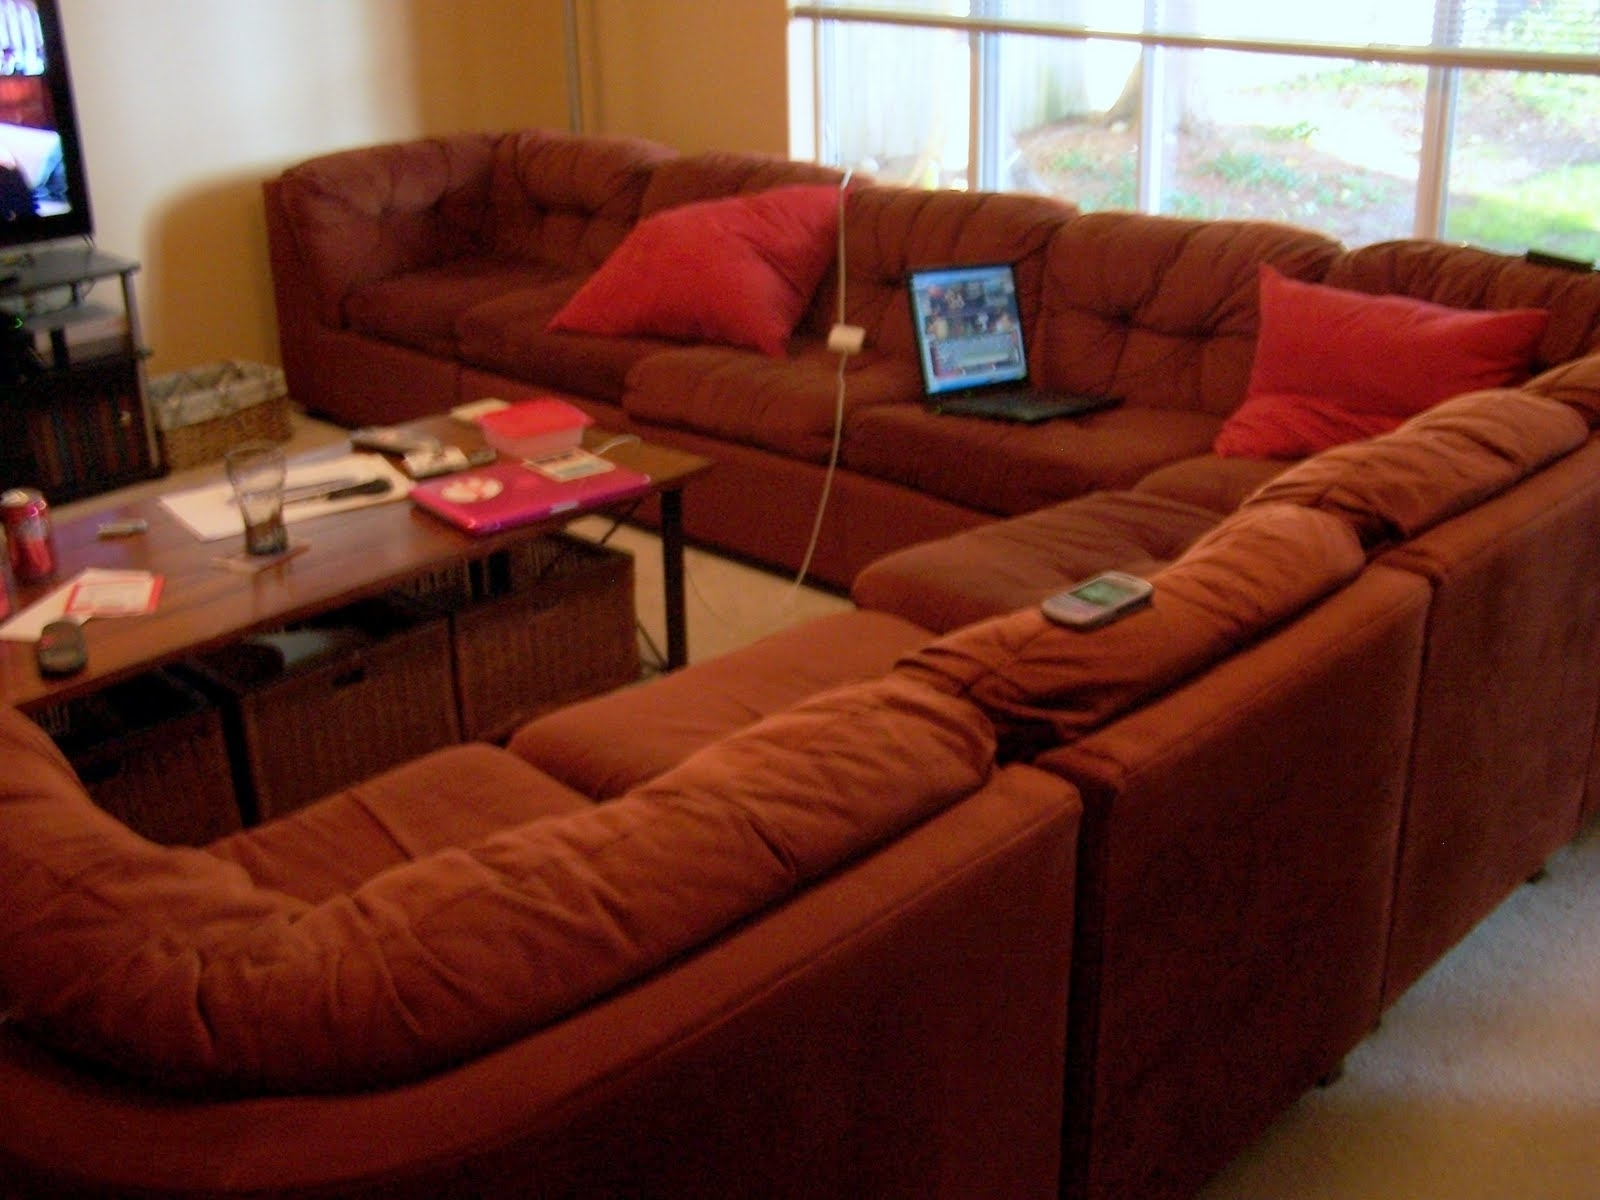 Stylish Sectional Sofas On Craigslist – Mediasupload Regarding Most Up To Date Sectional Sofas At Craigslist (View 9 of 15)